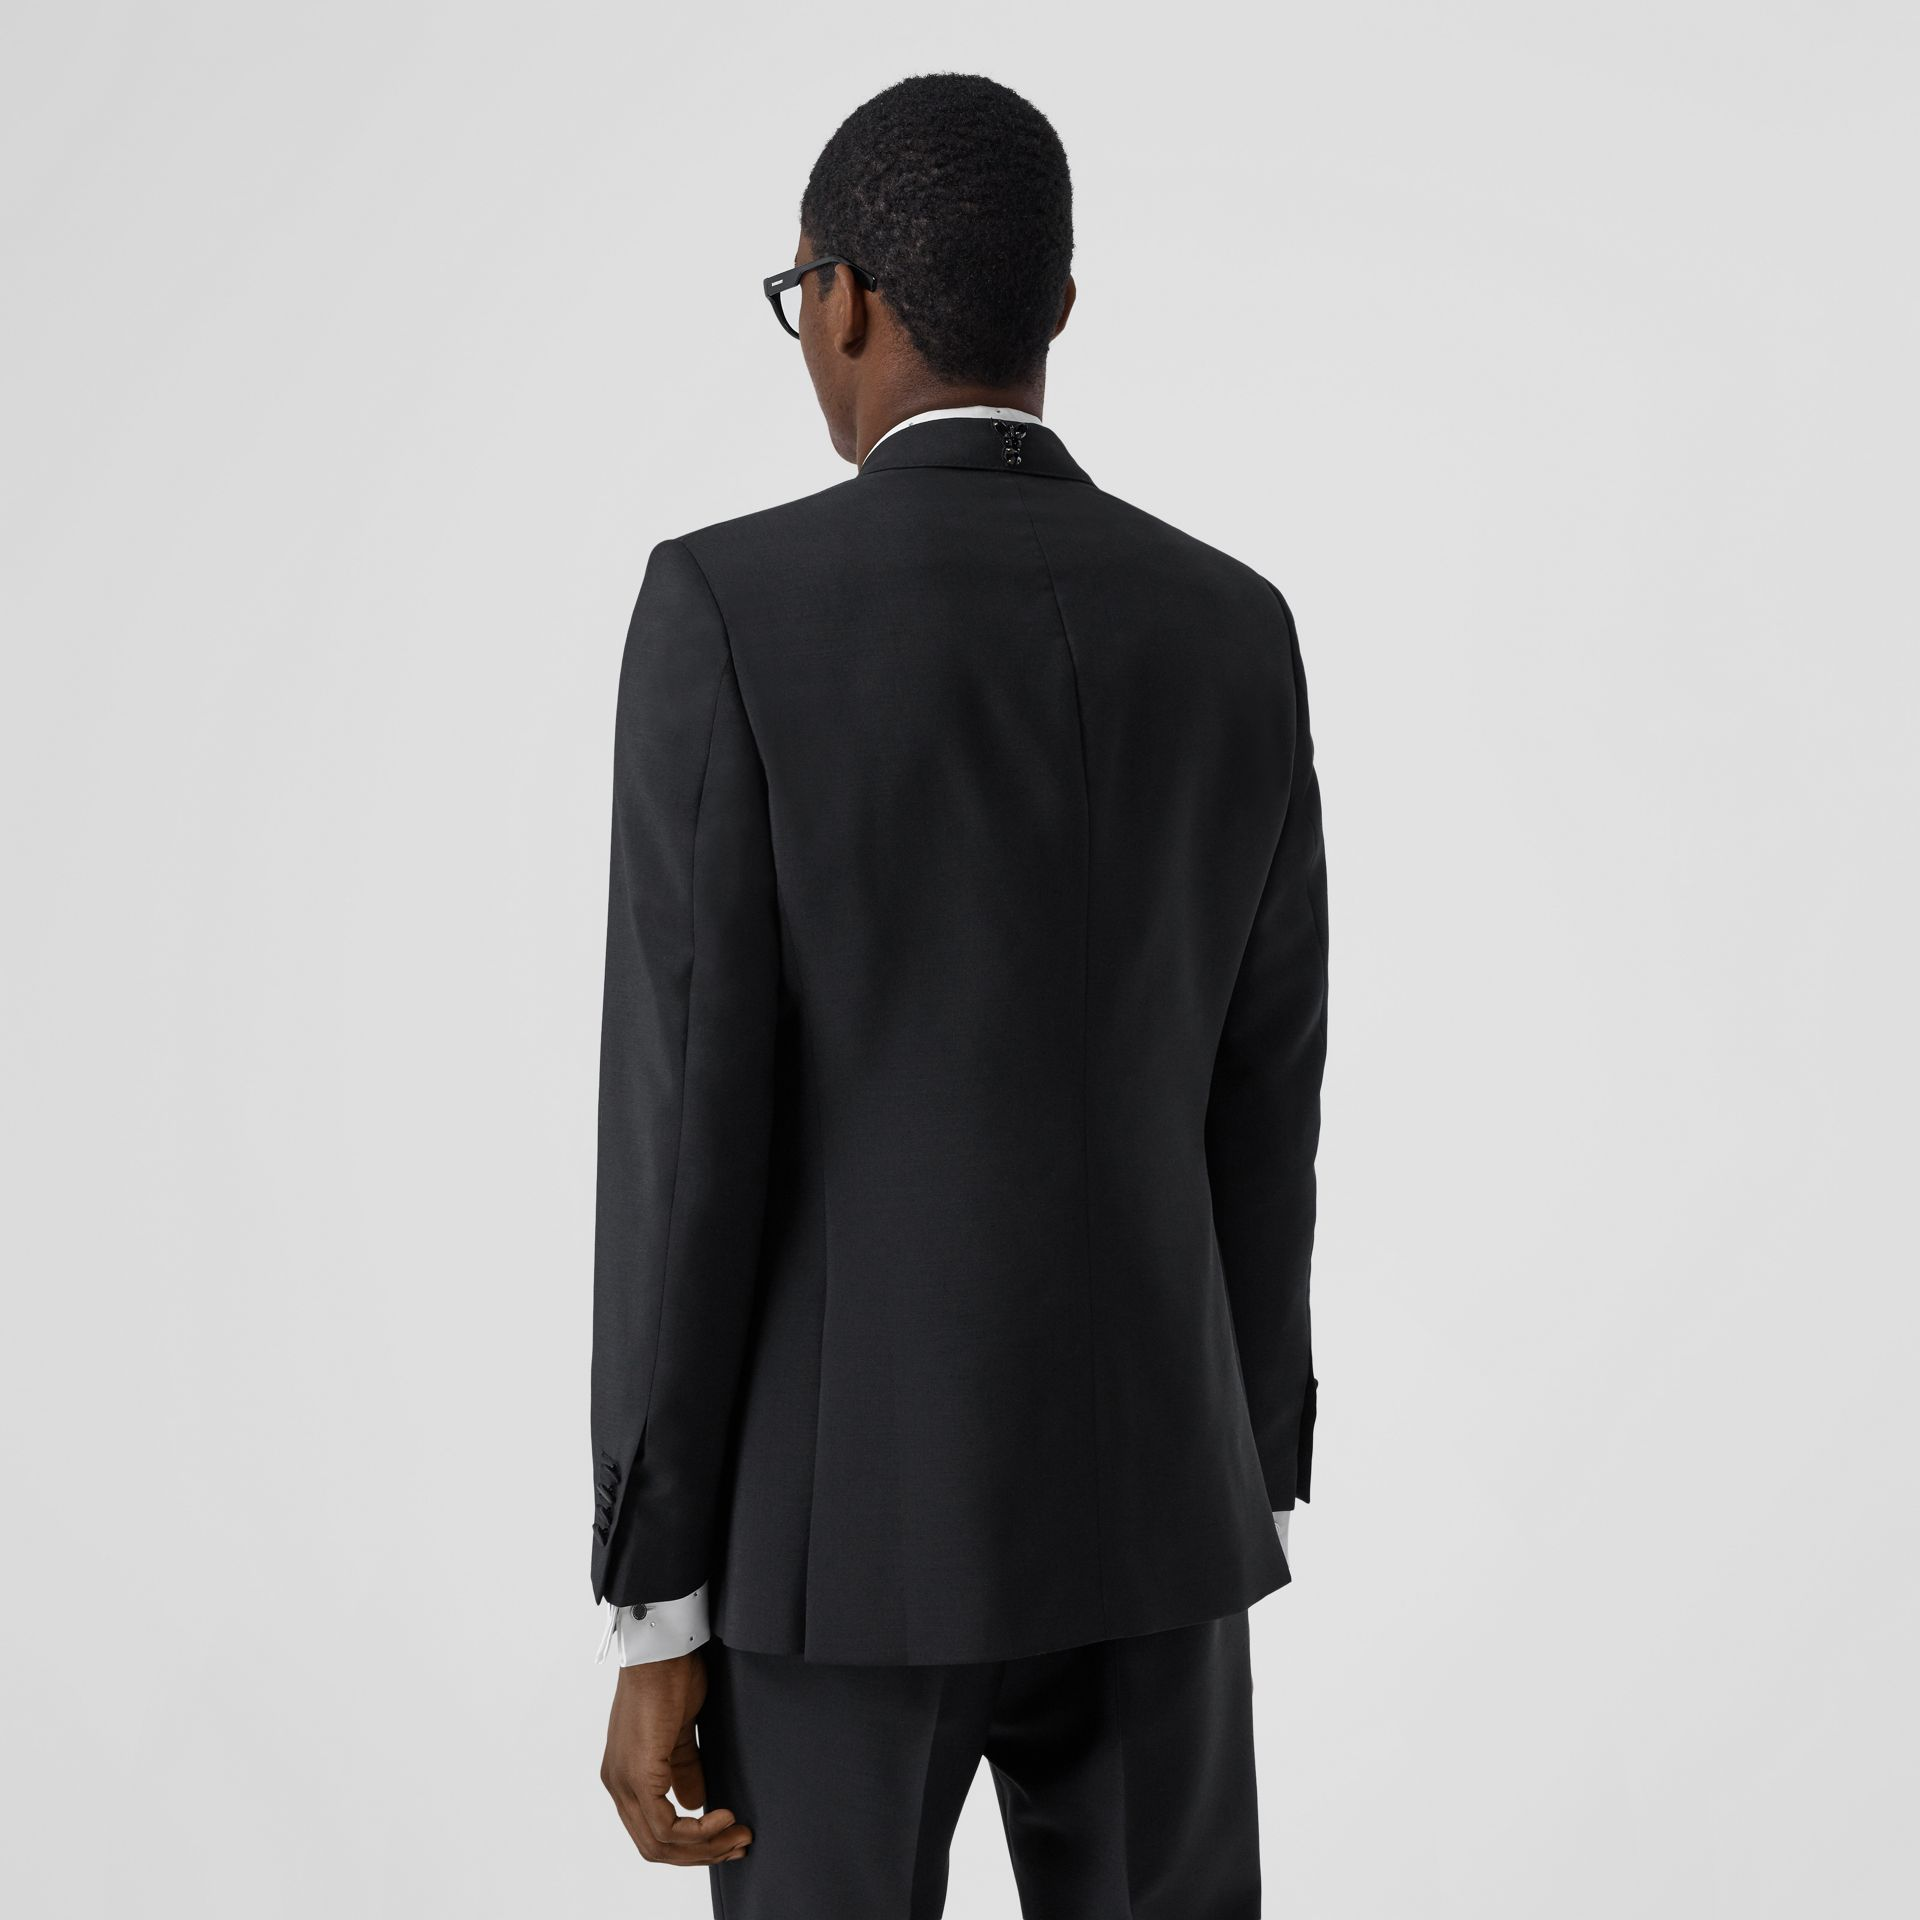 English Fit Embellished Mohair Wool Tuxedo Jacket in Black - Men | Burberry - gallery image 2